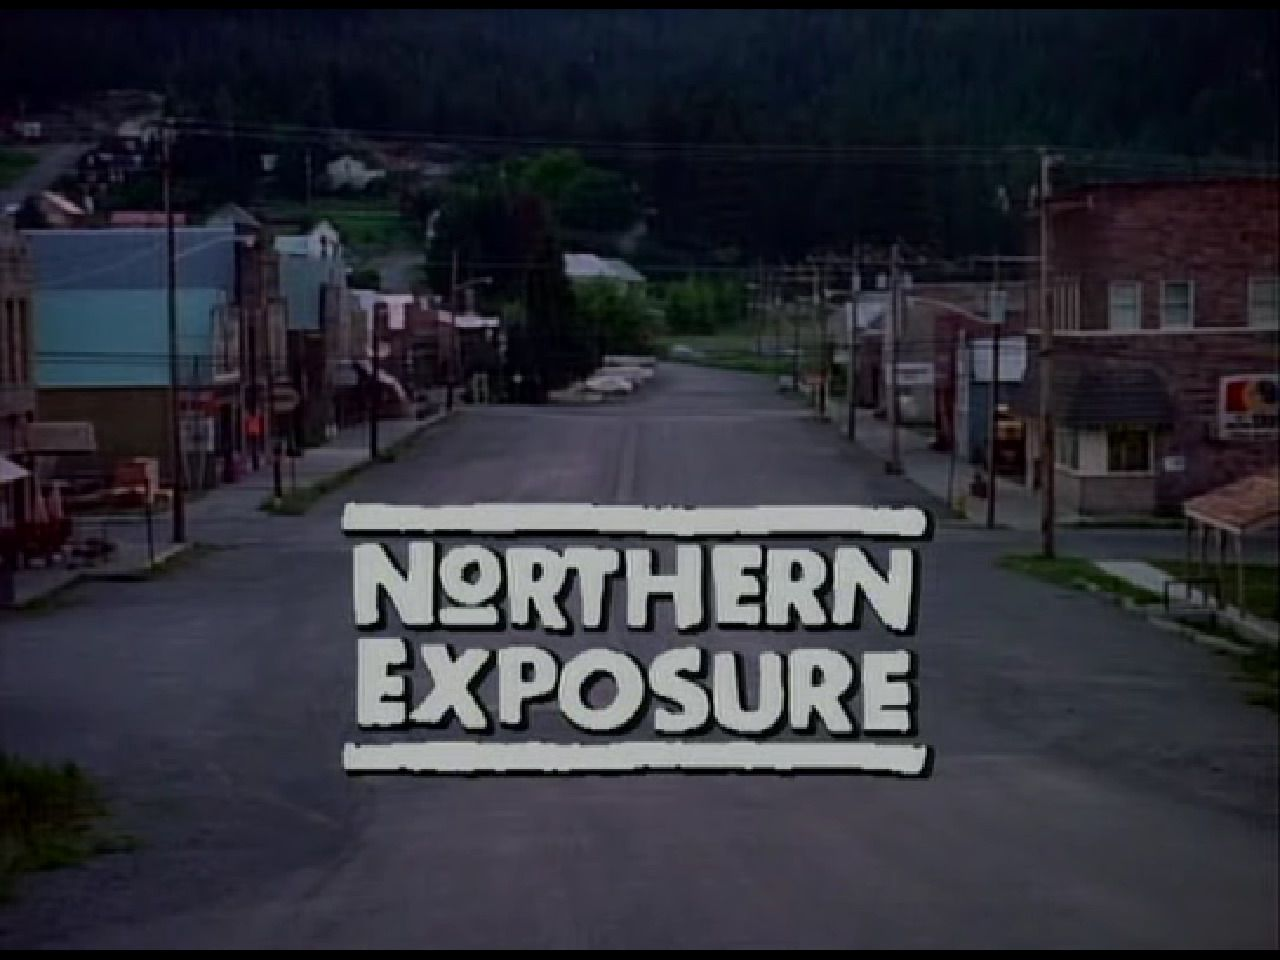 01 - Northern Exposure